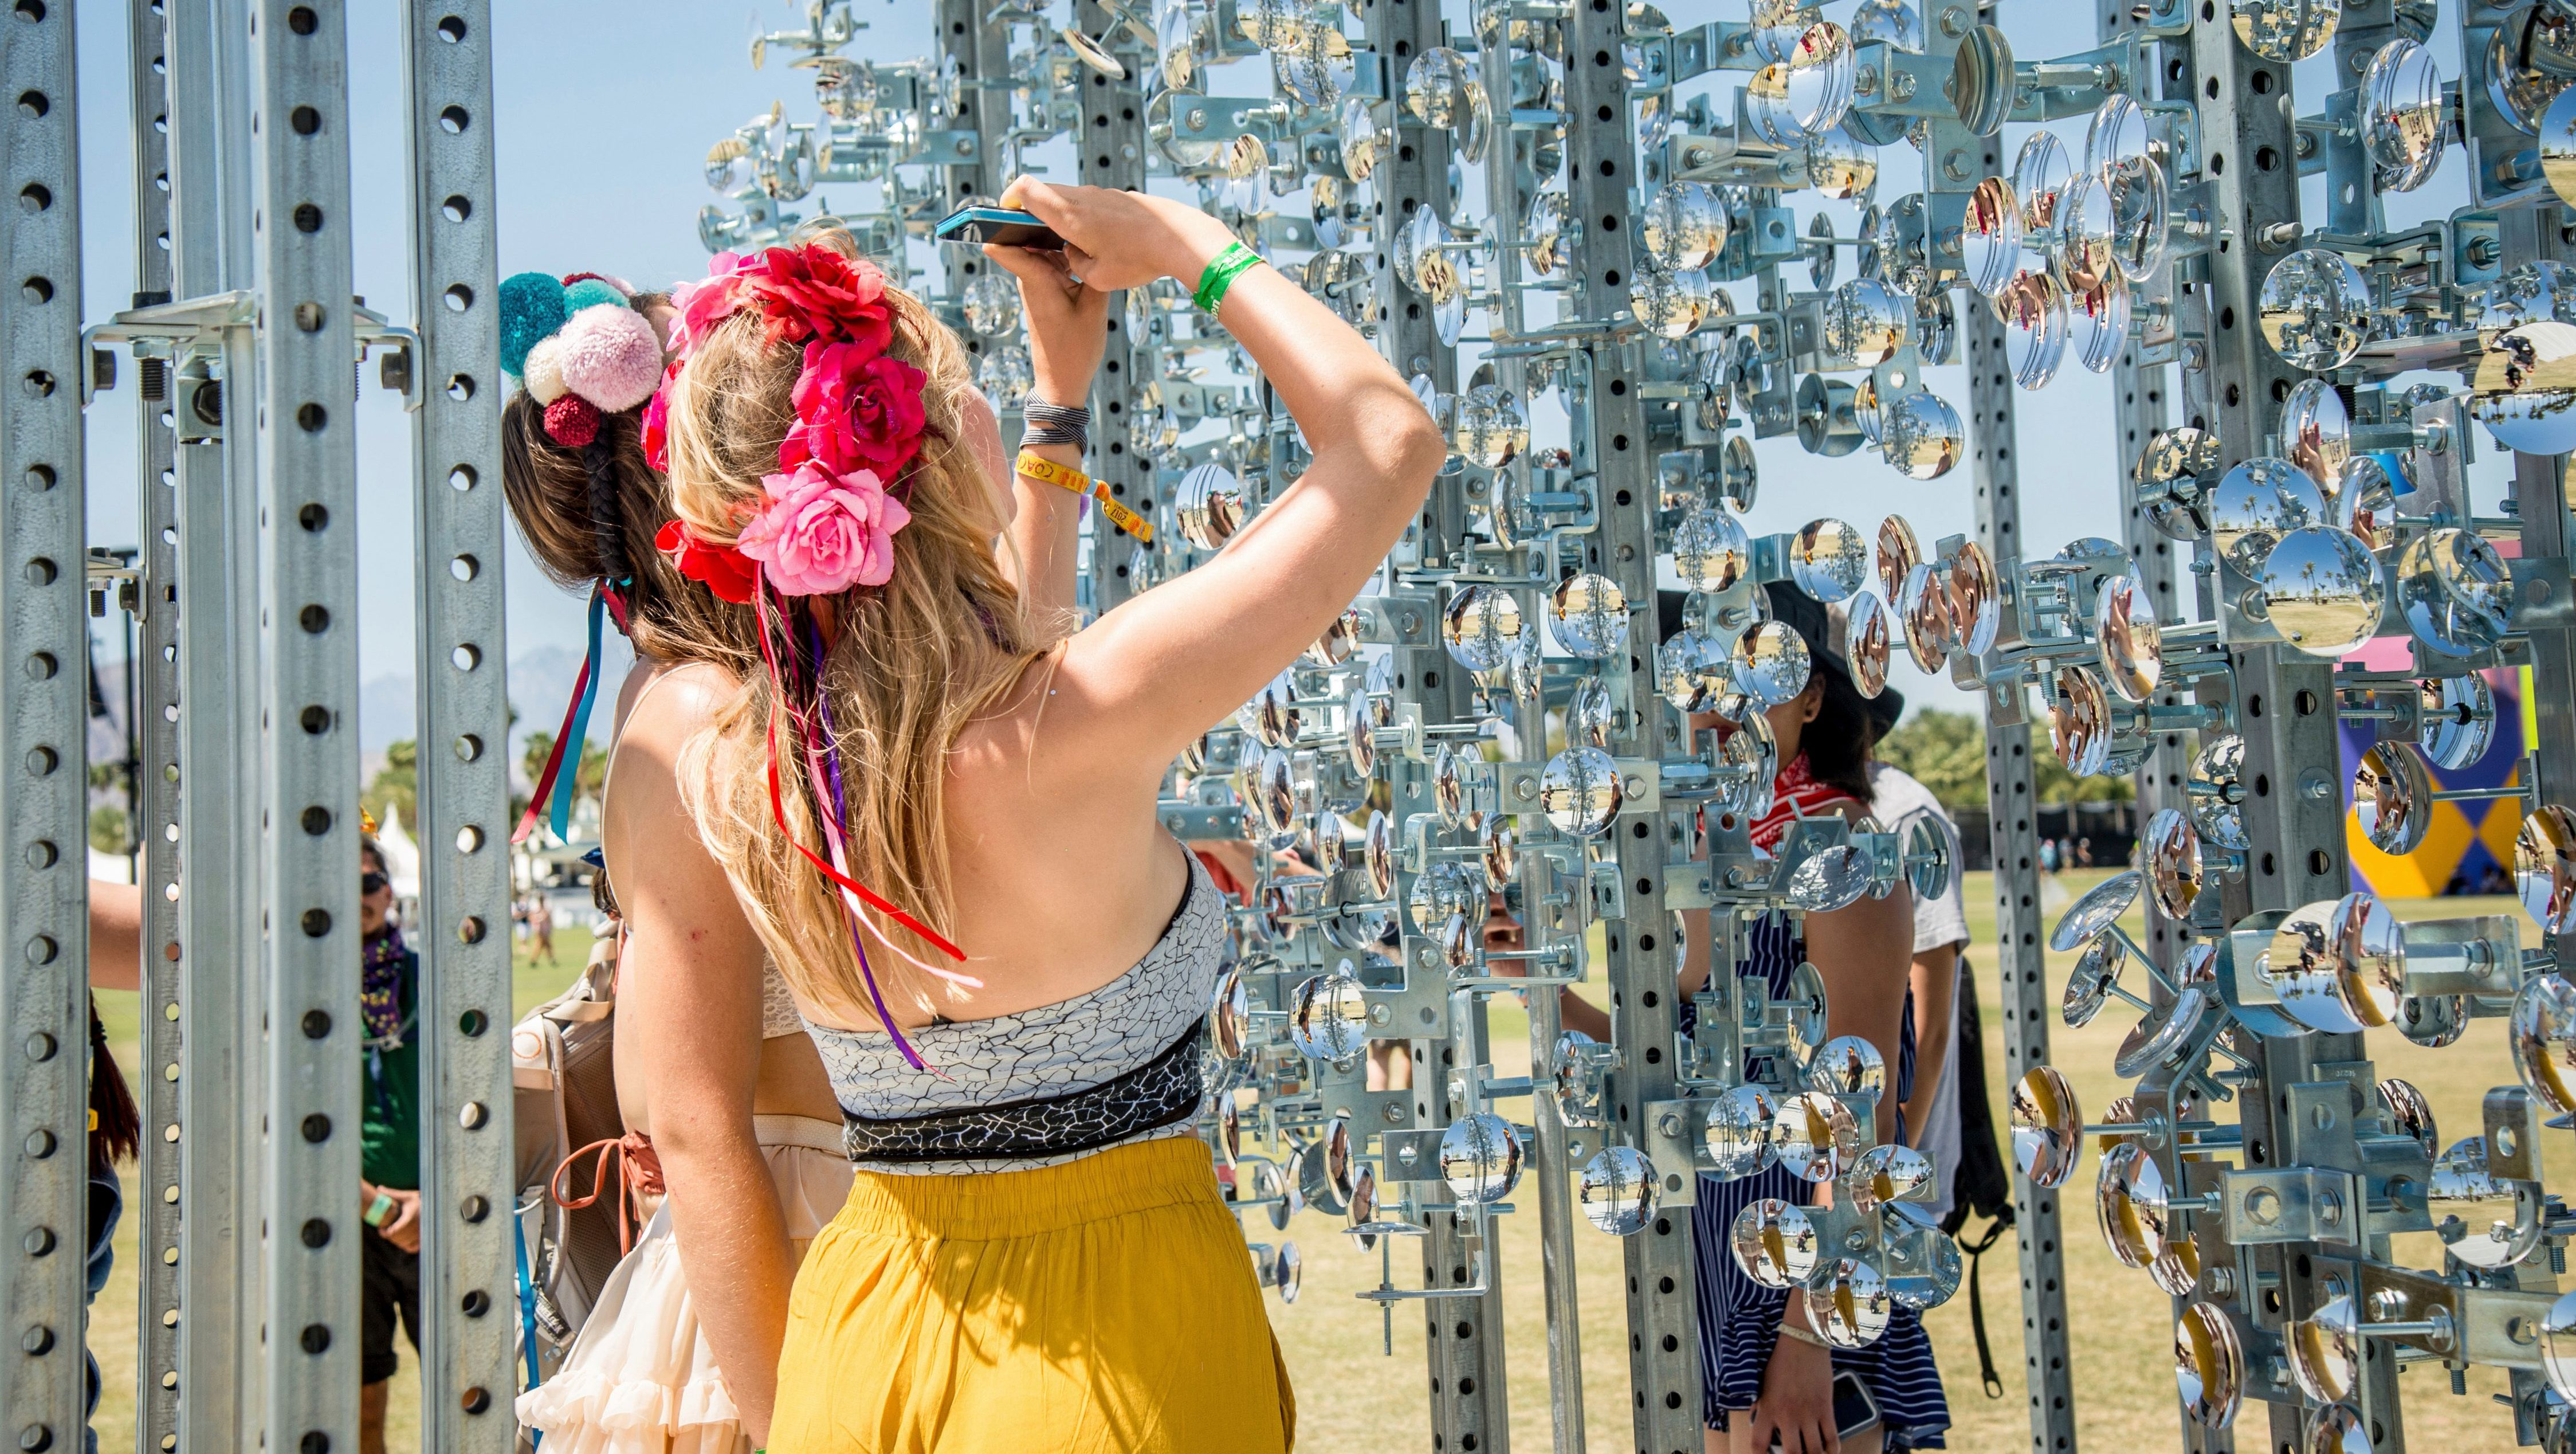 Festival goers Maisie Hoile, left, and Lucie Maguire take a selfie at Coachella Music & Arts Festival at the Empire Polo Club on Saturday, April 15, 2017, in Indio, Calif. (Photo by Amy Harris/Invision/AP)